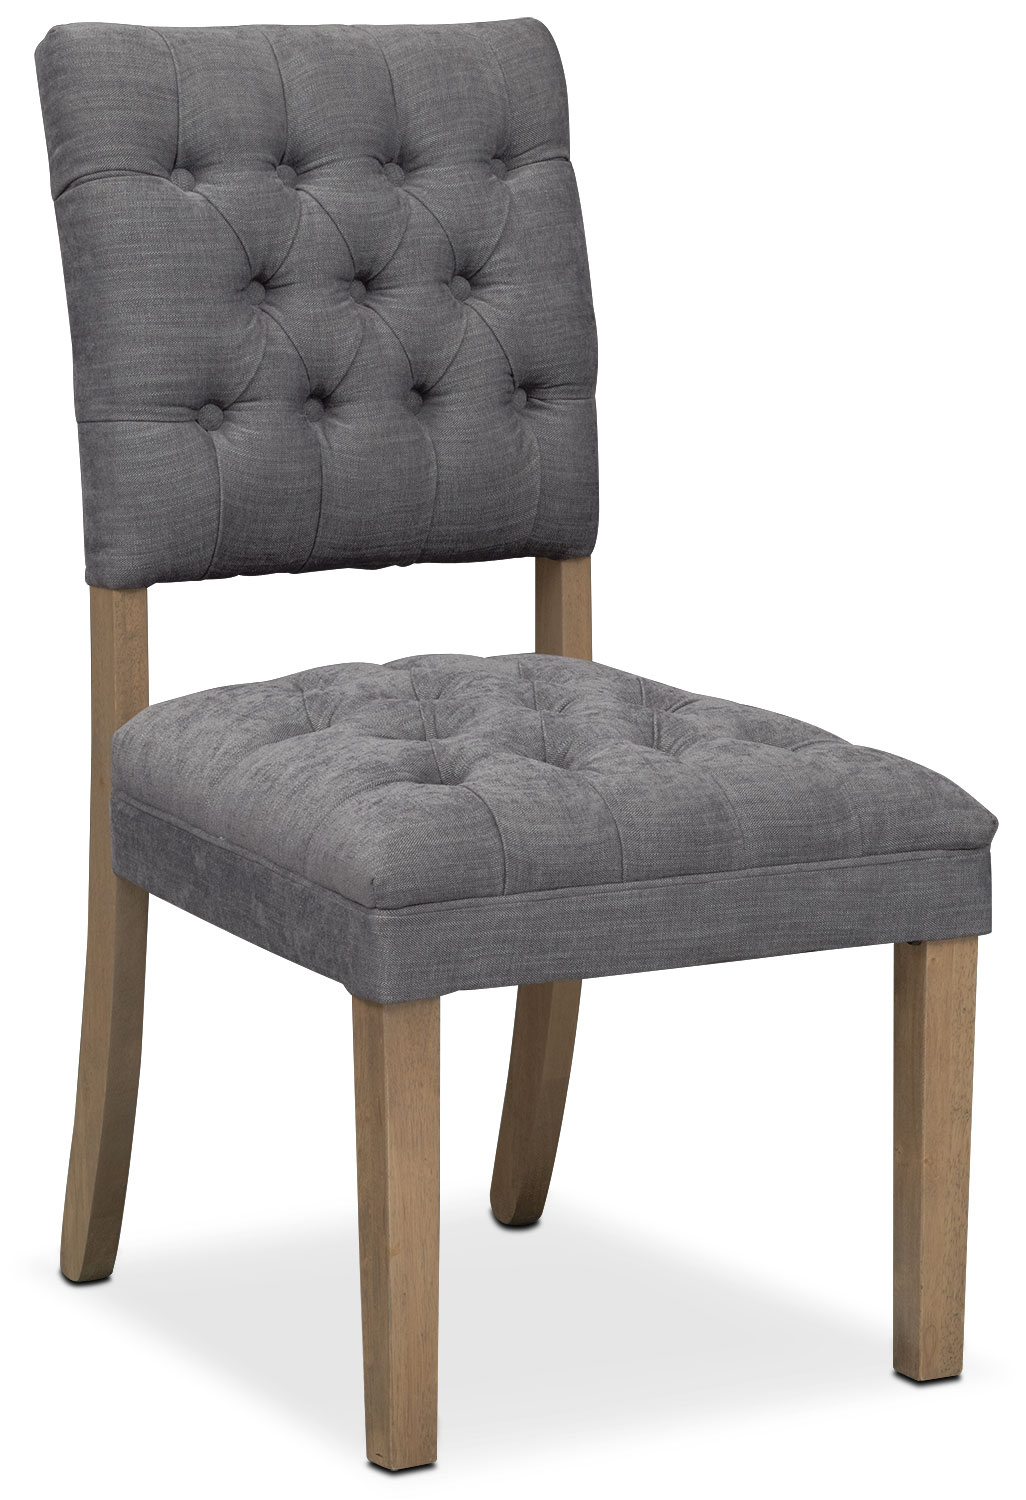 Gretchen Side Chair - Gray